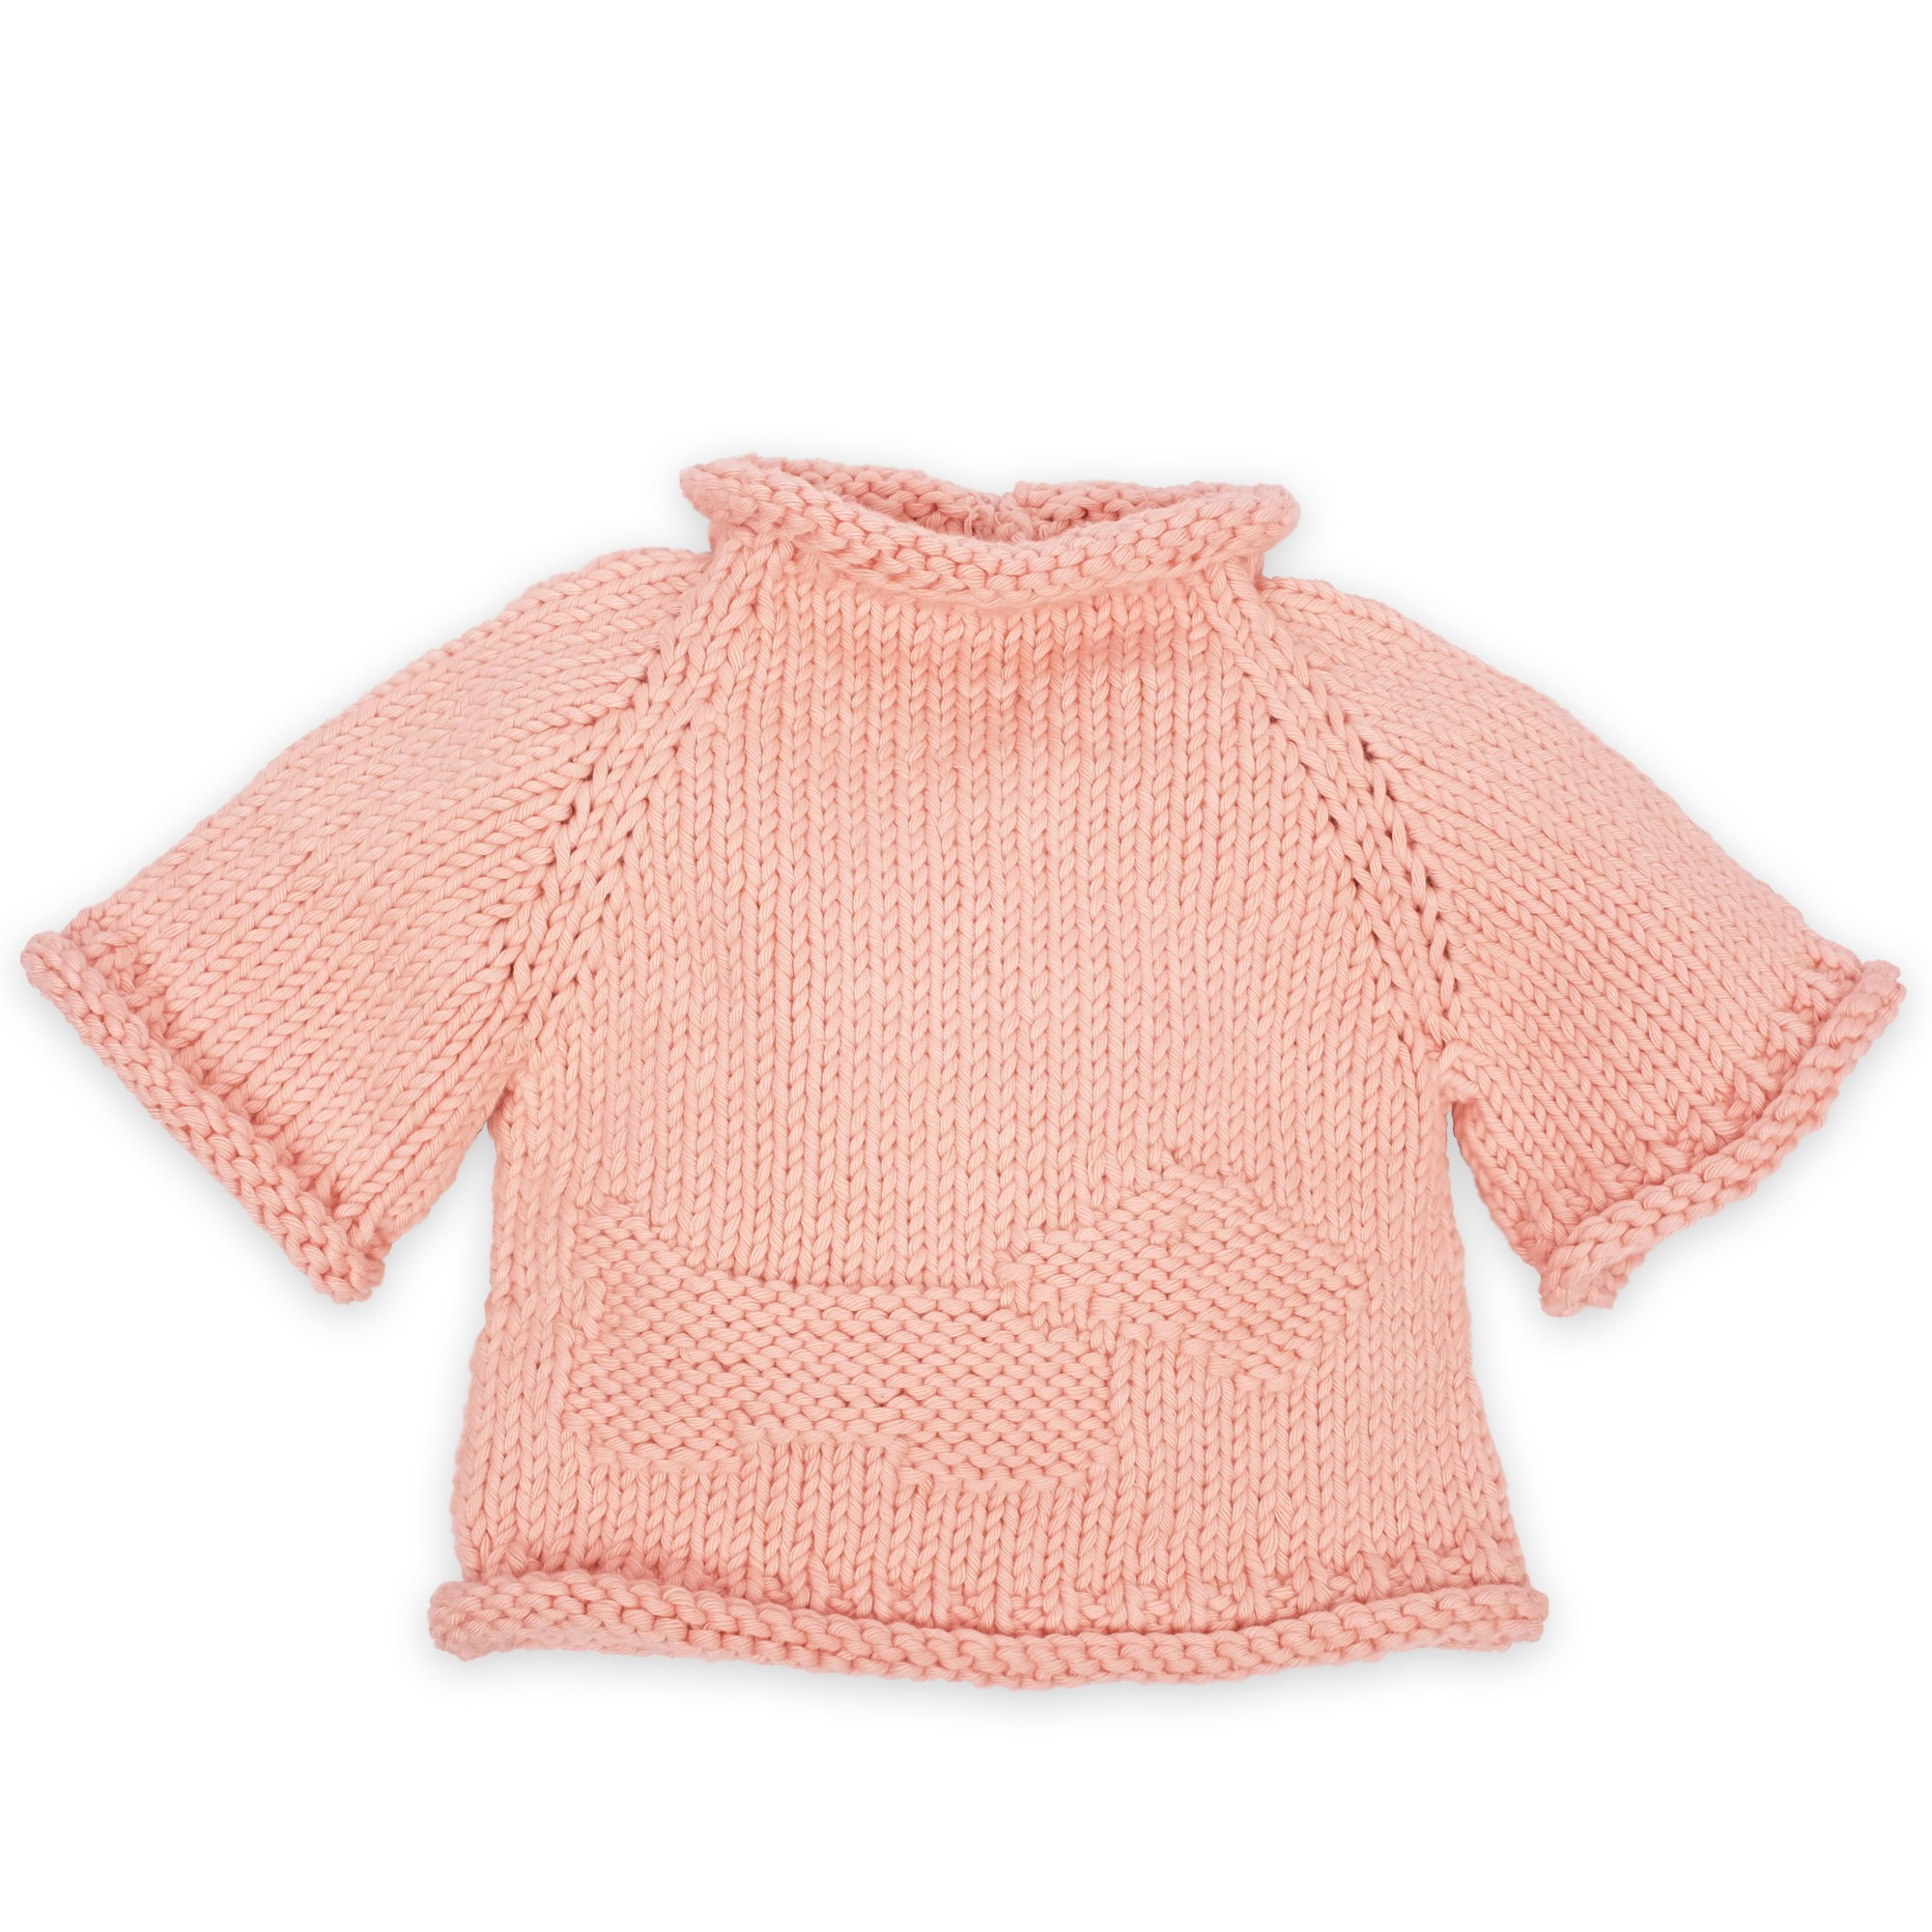 Mamy Factory sweater: dragee pink baby sweater Germain knitted in ...